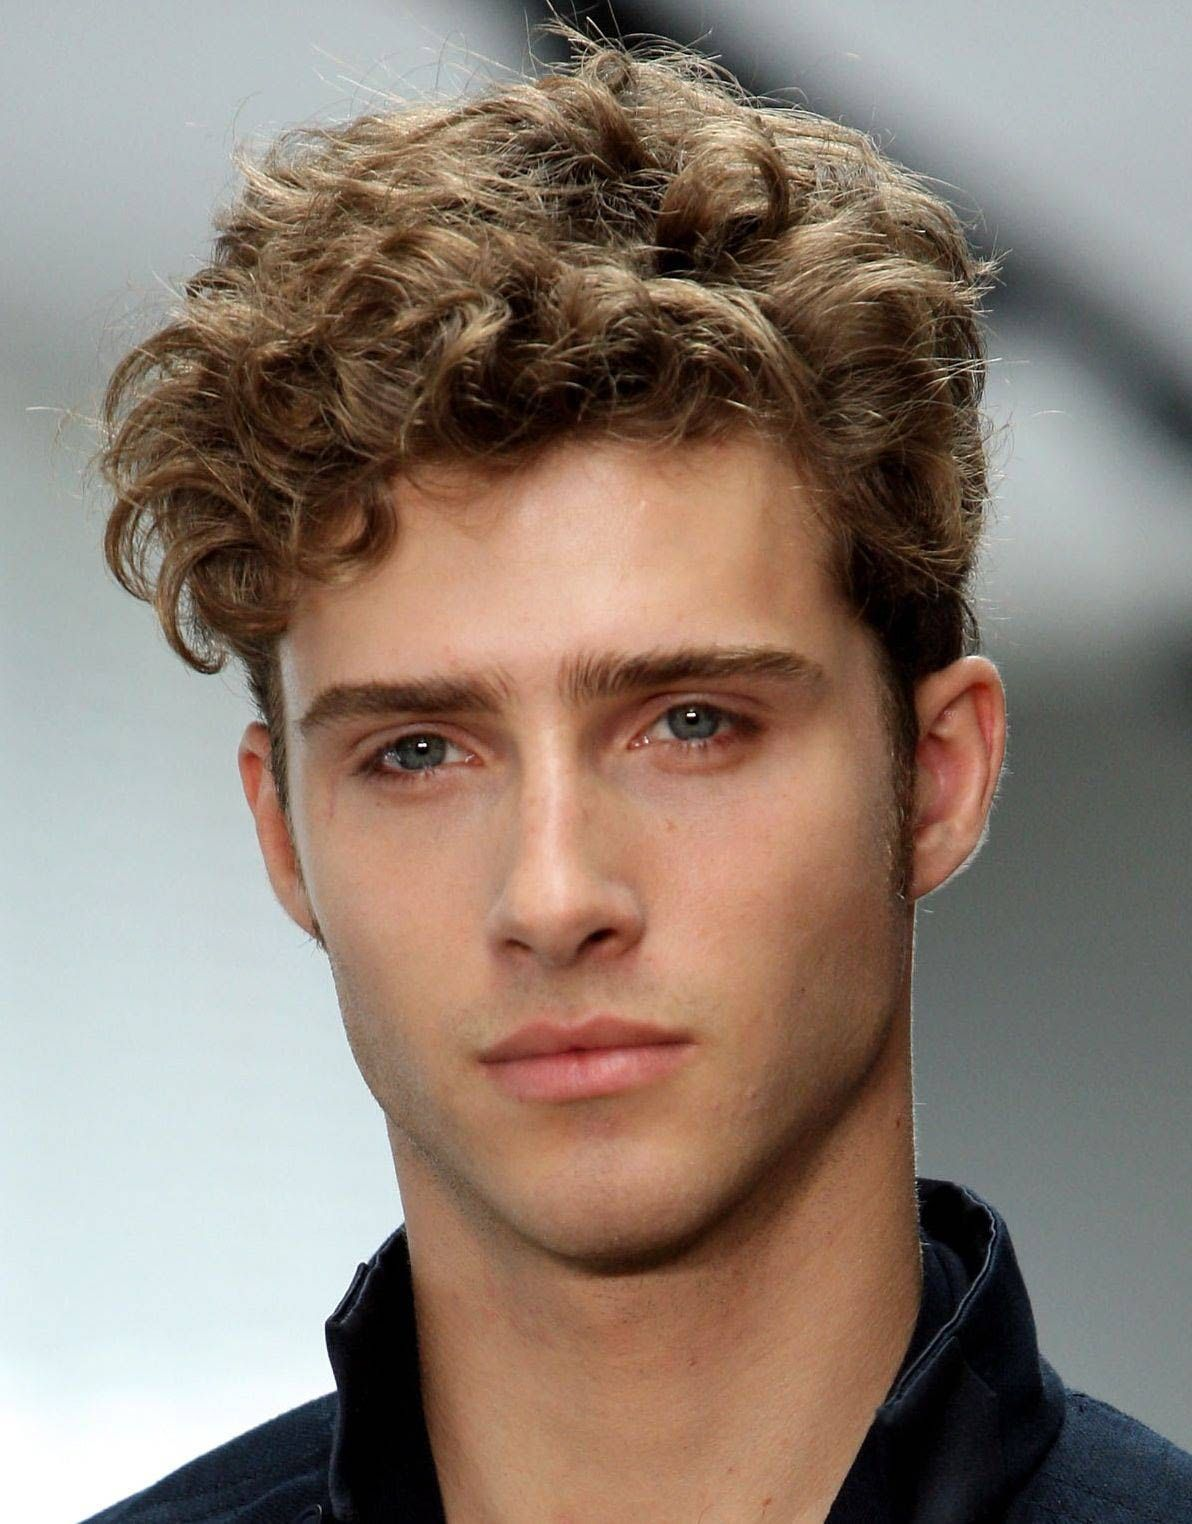 Here S Exactly How To Style Your Curly Hair Curly Hair Men Men S Curly Hairstyles Curly Hair Styles